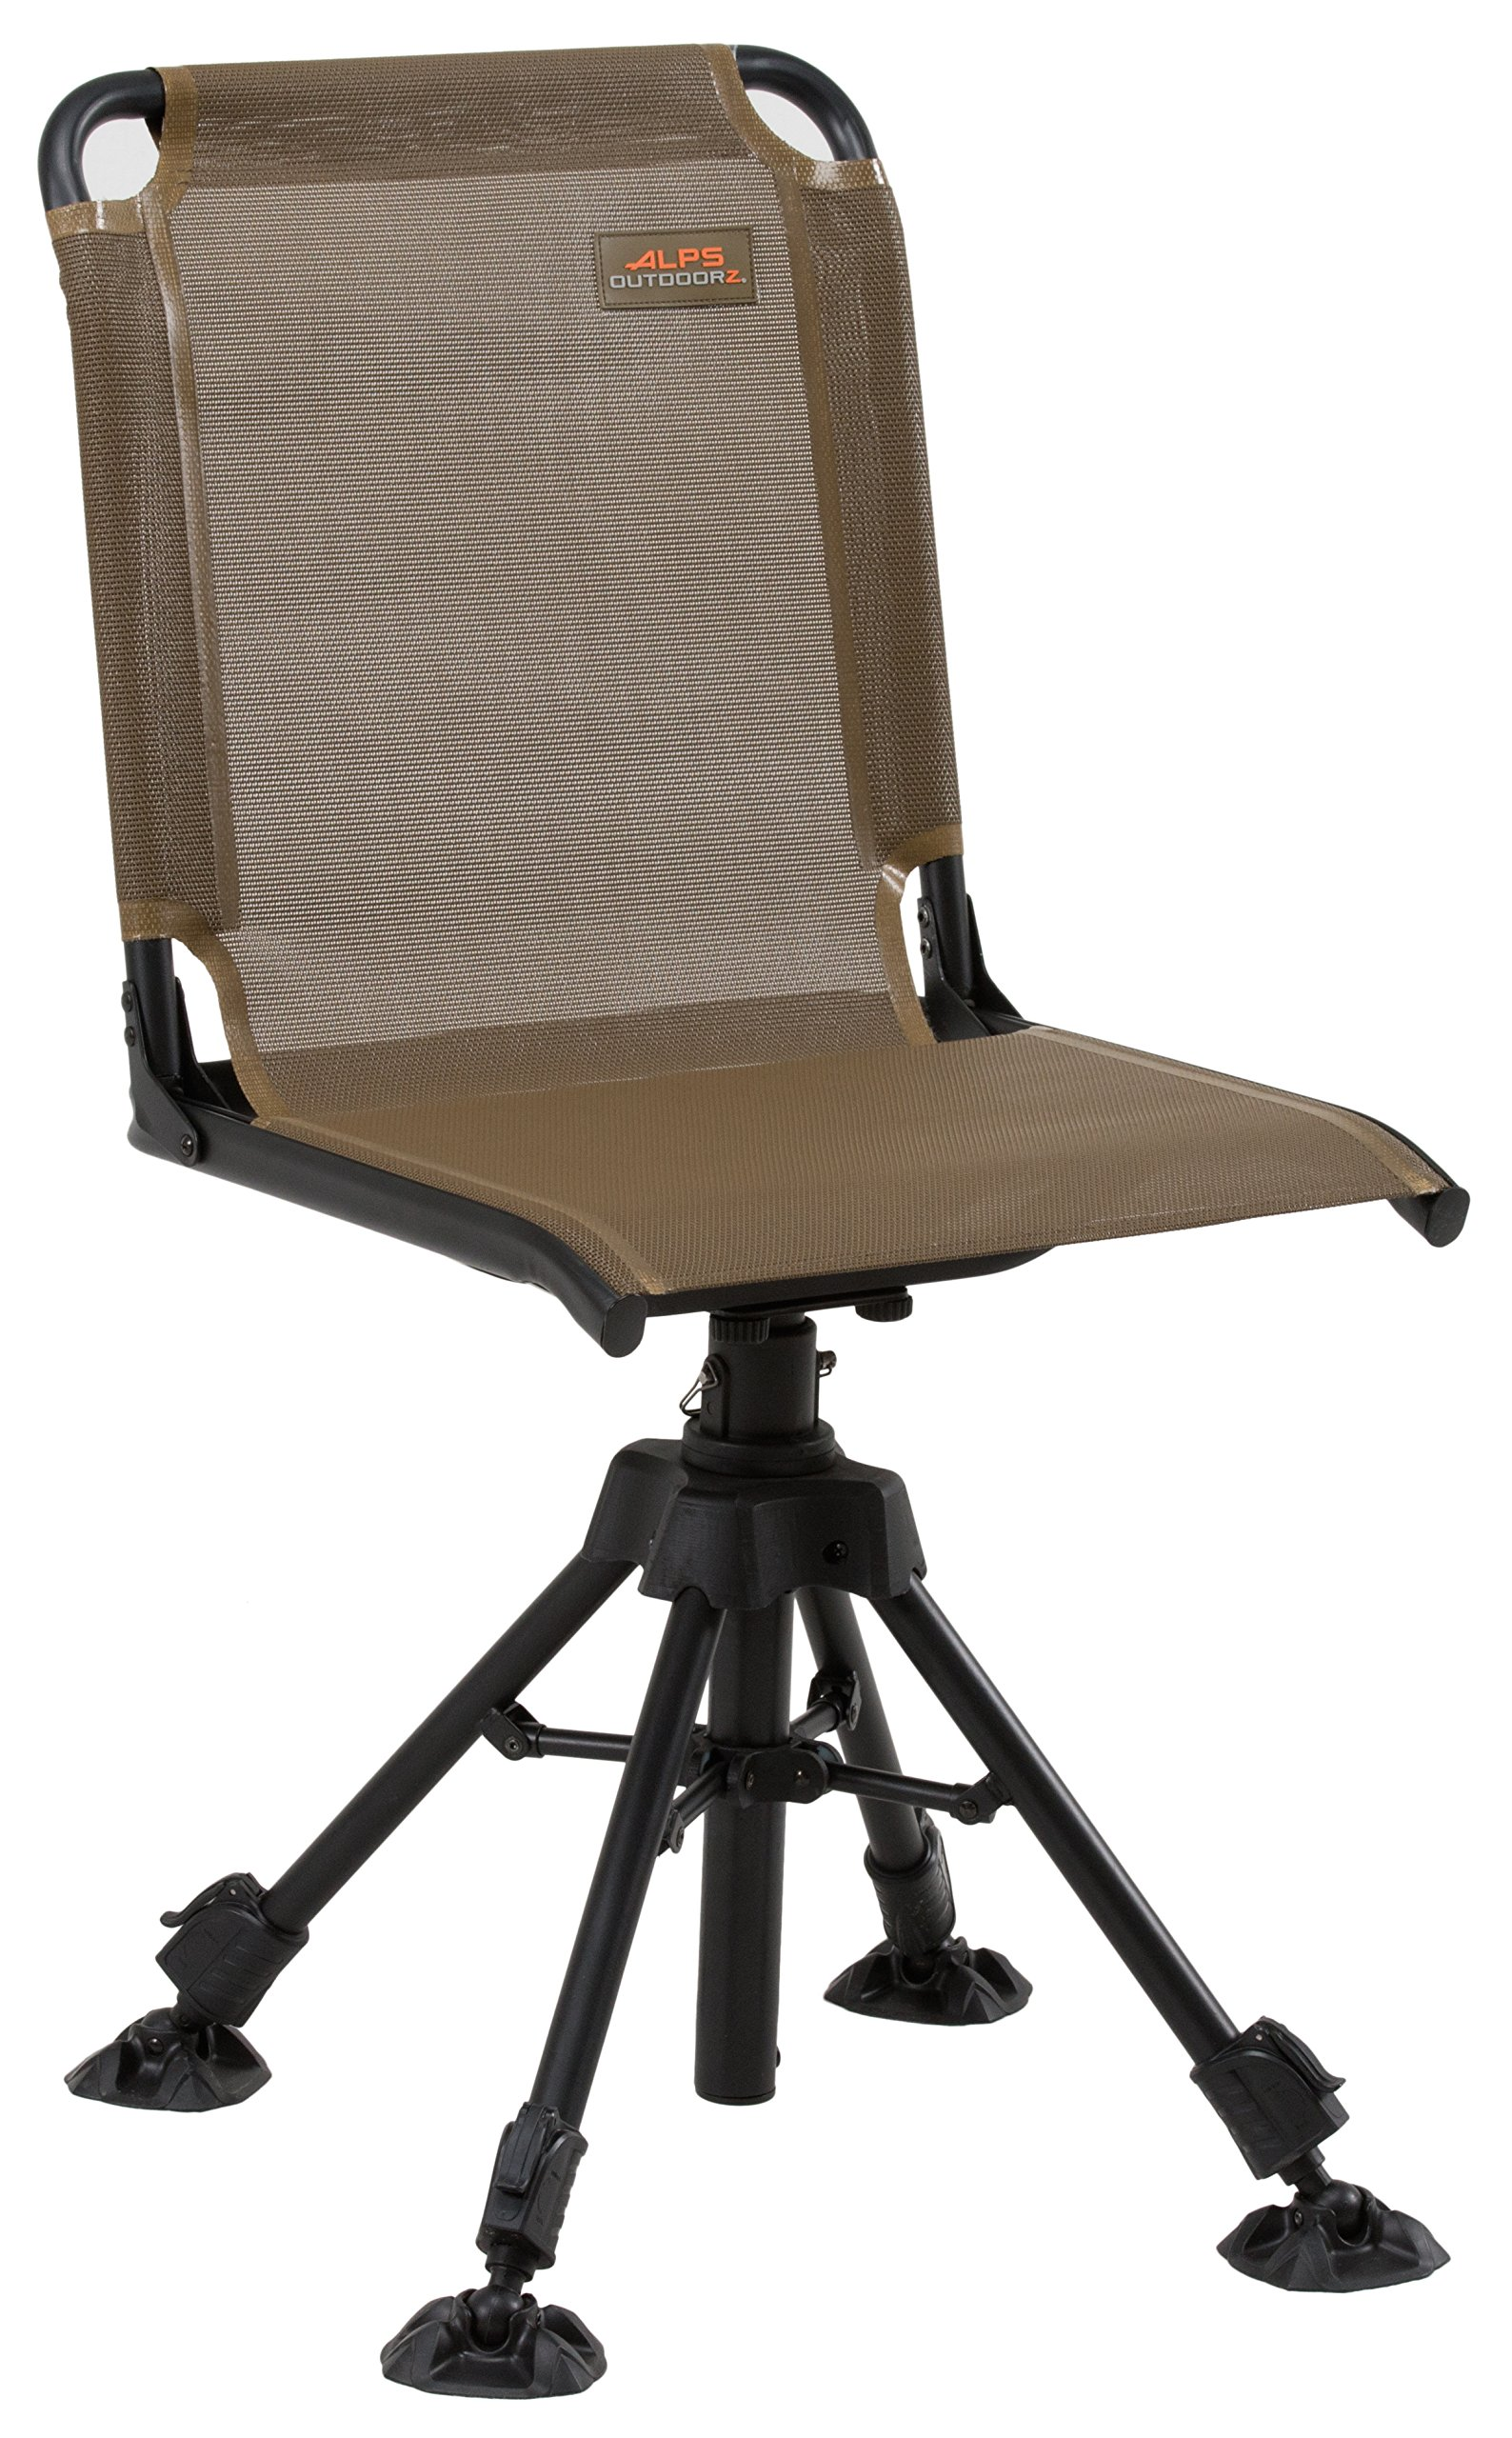 Overview about the Ground Blind Chair Indispensable on 2017 The